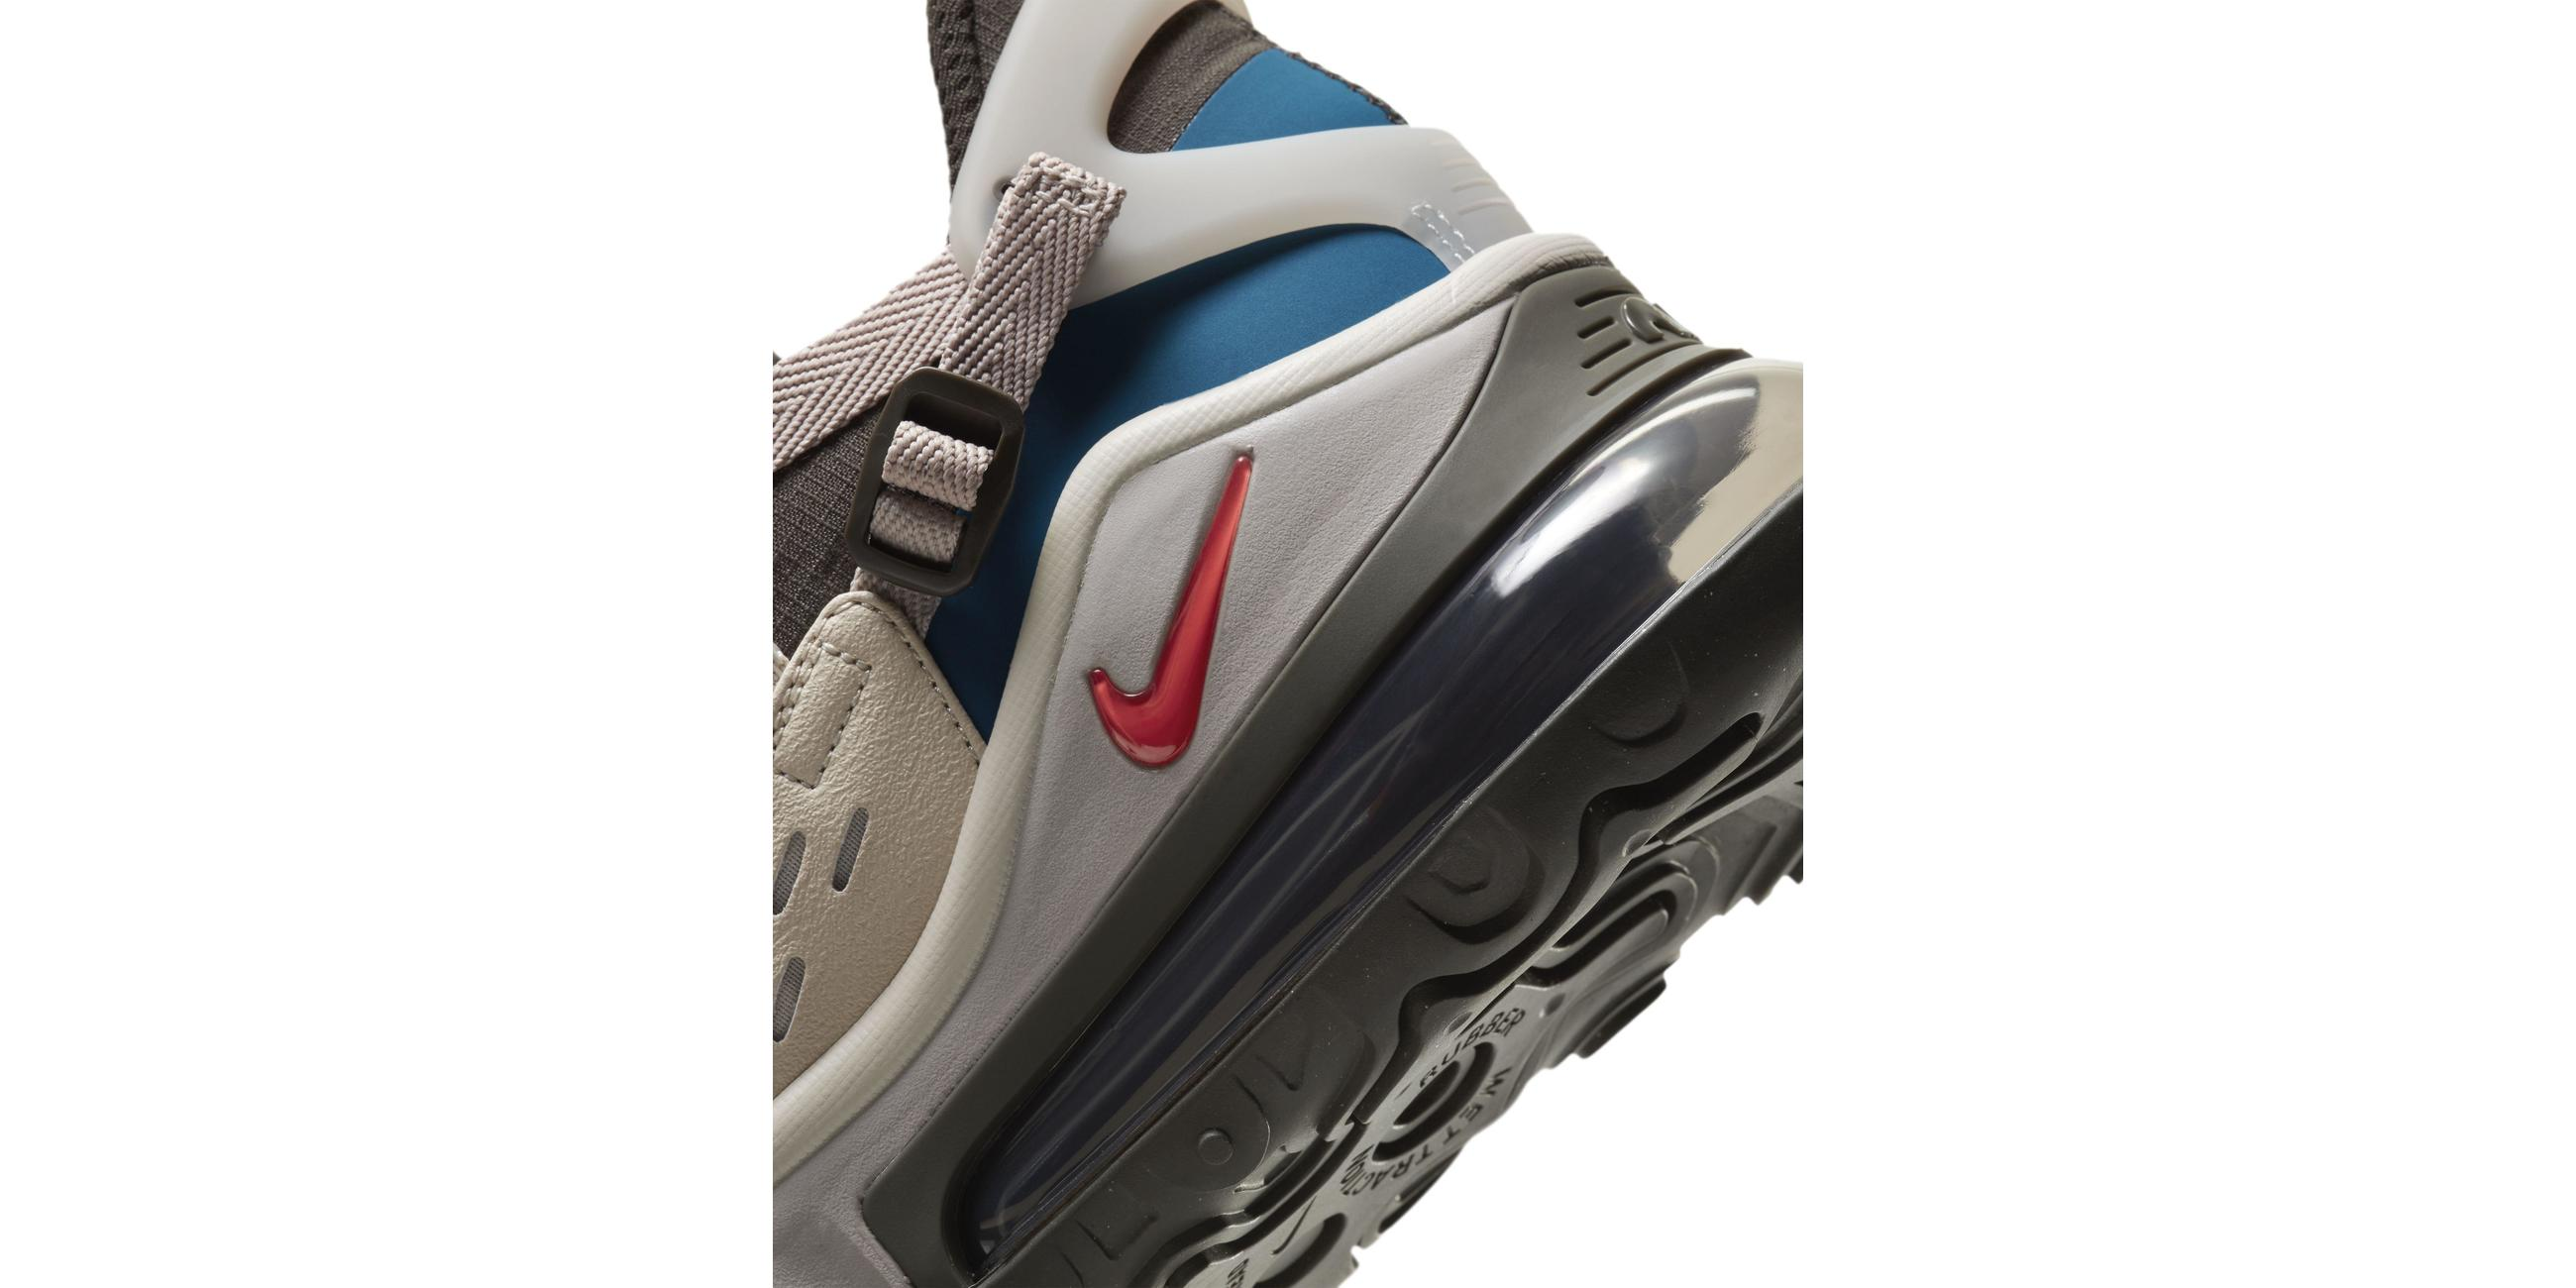 Nike Air Max Vistascape Light Orewood Brown/Newsprint/Green Abyss/Chile Red